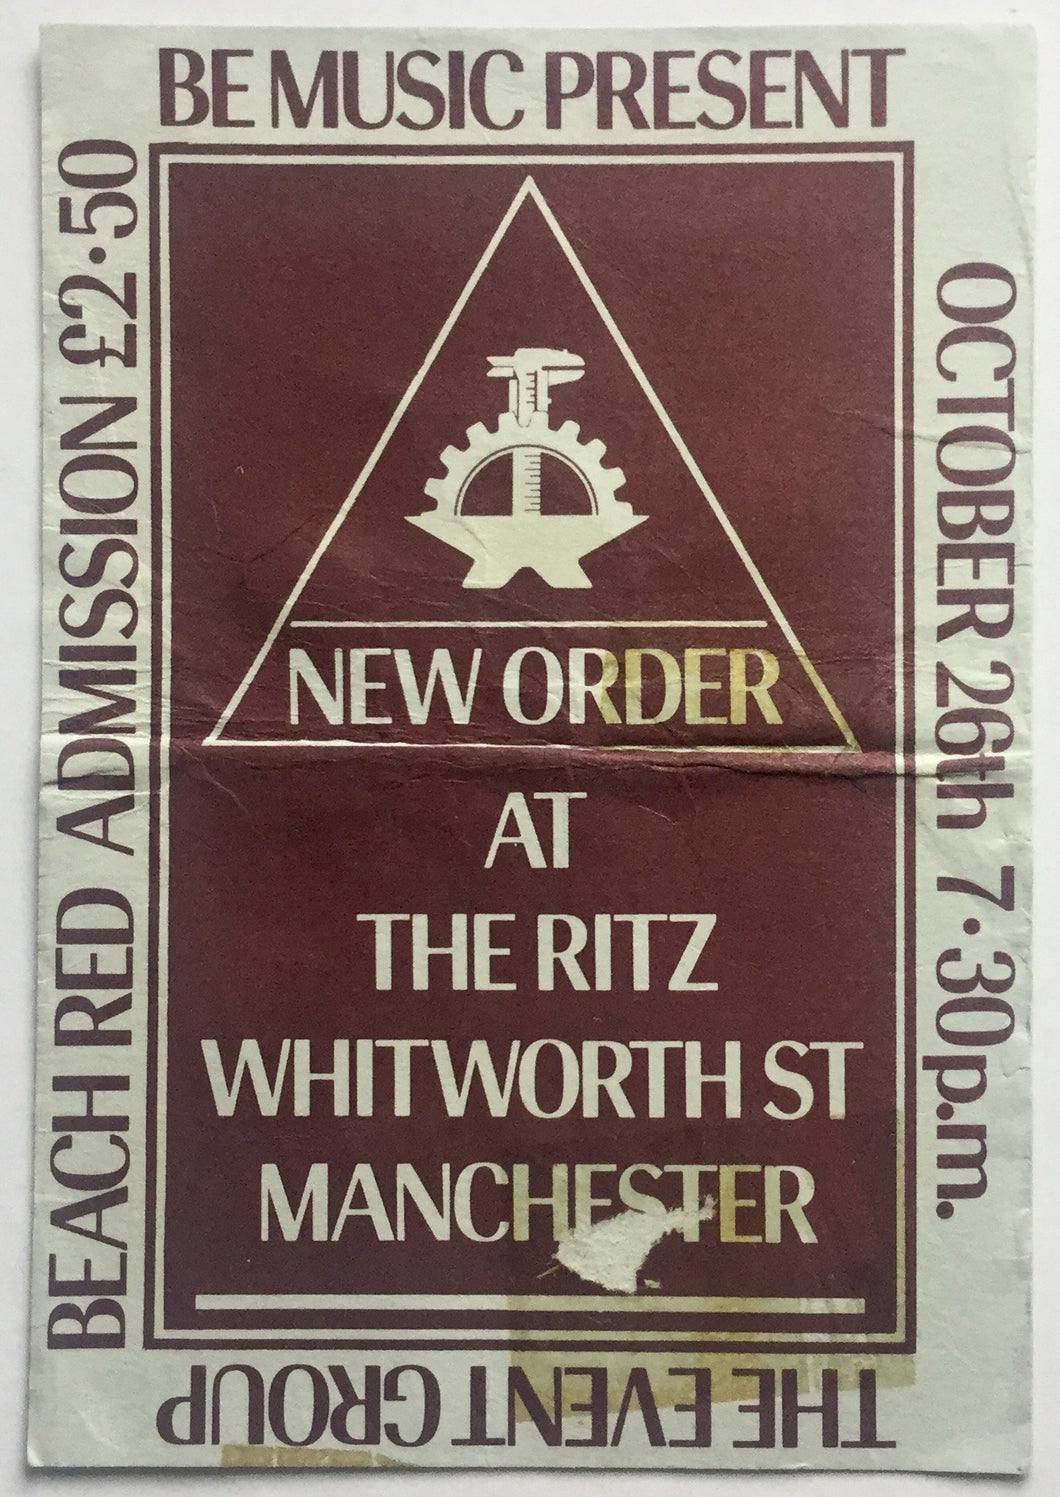 Joy Division New Order Original Used Concert Ticket The Ritz Manchester 26th Oct 1981